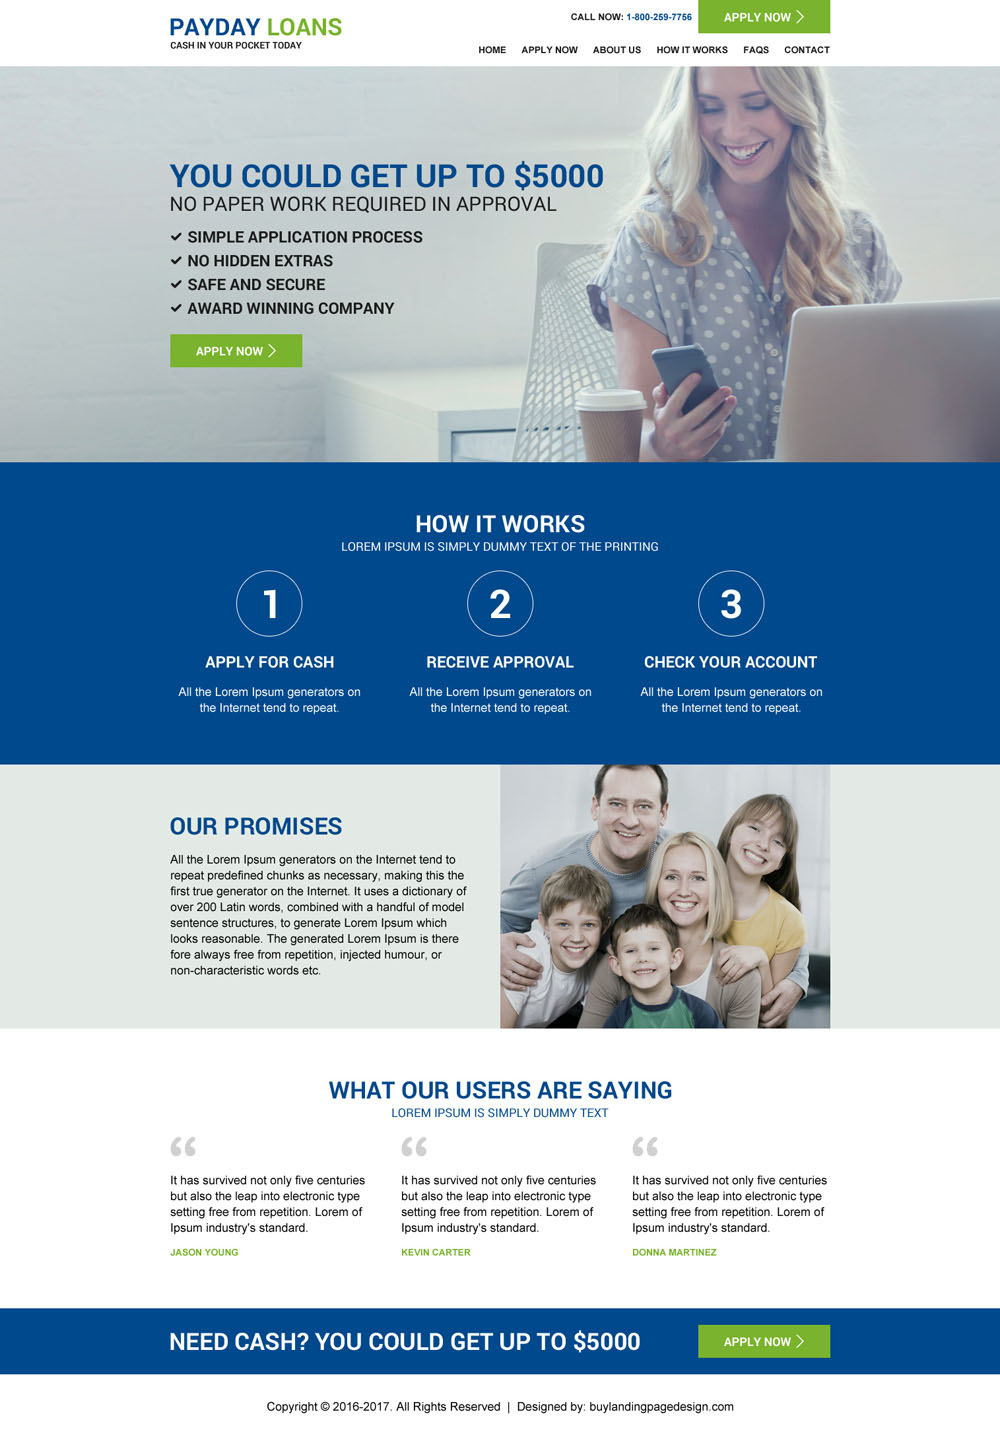 payday-loan-html-website-template-001-index-page